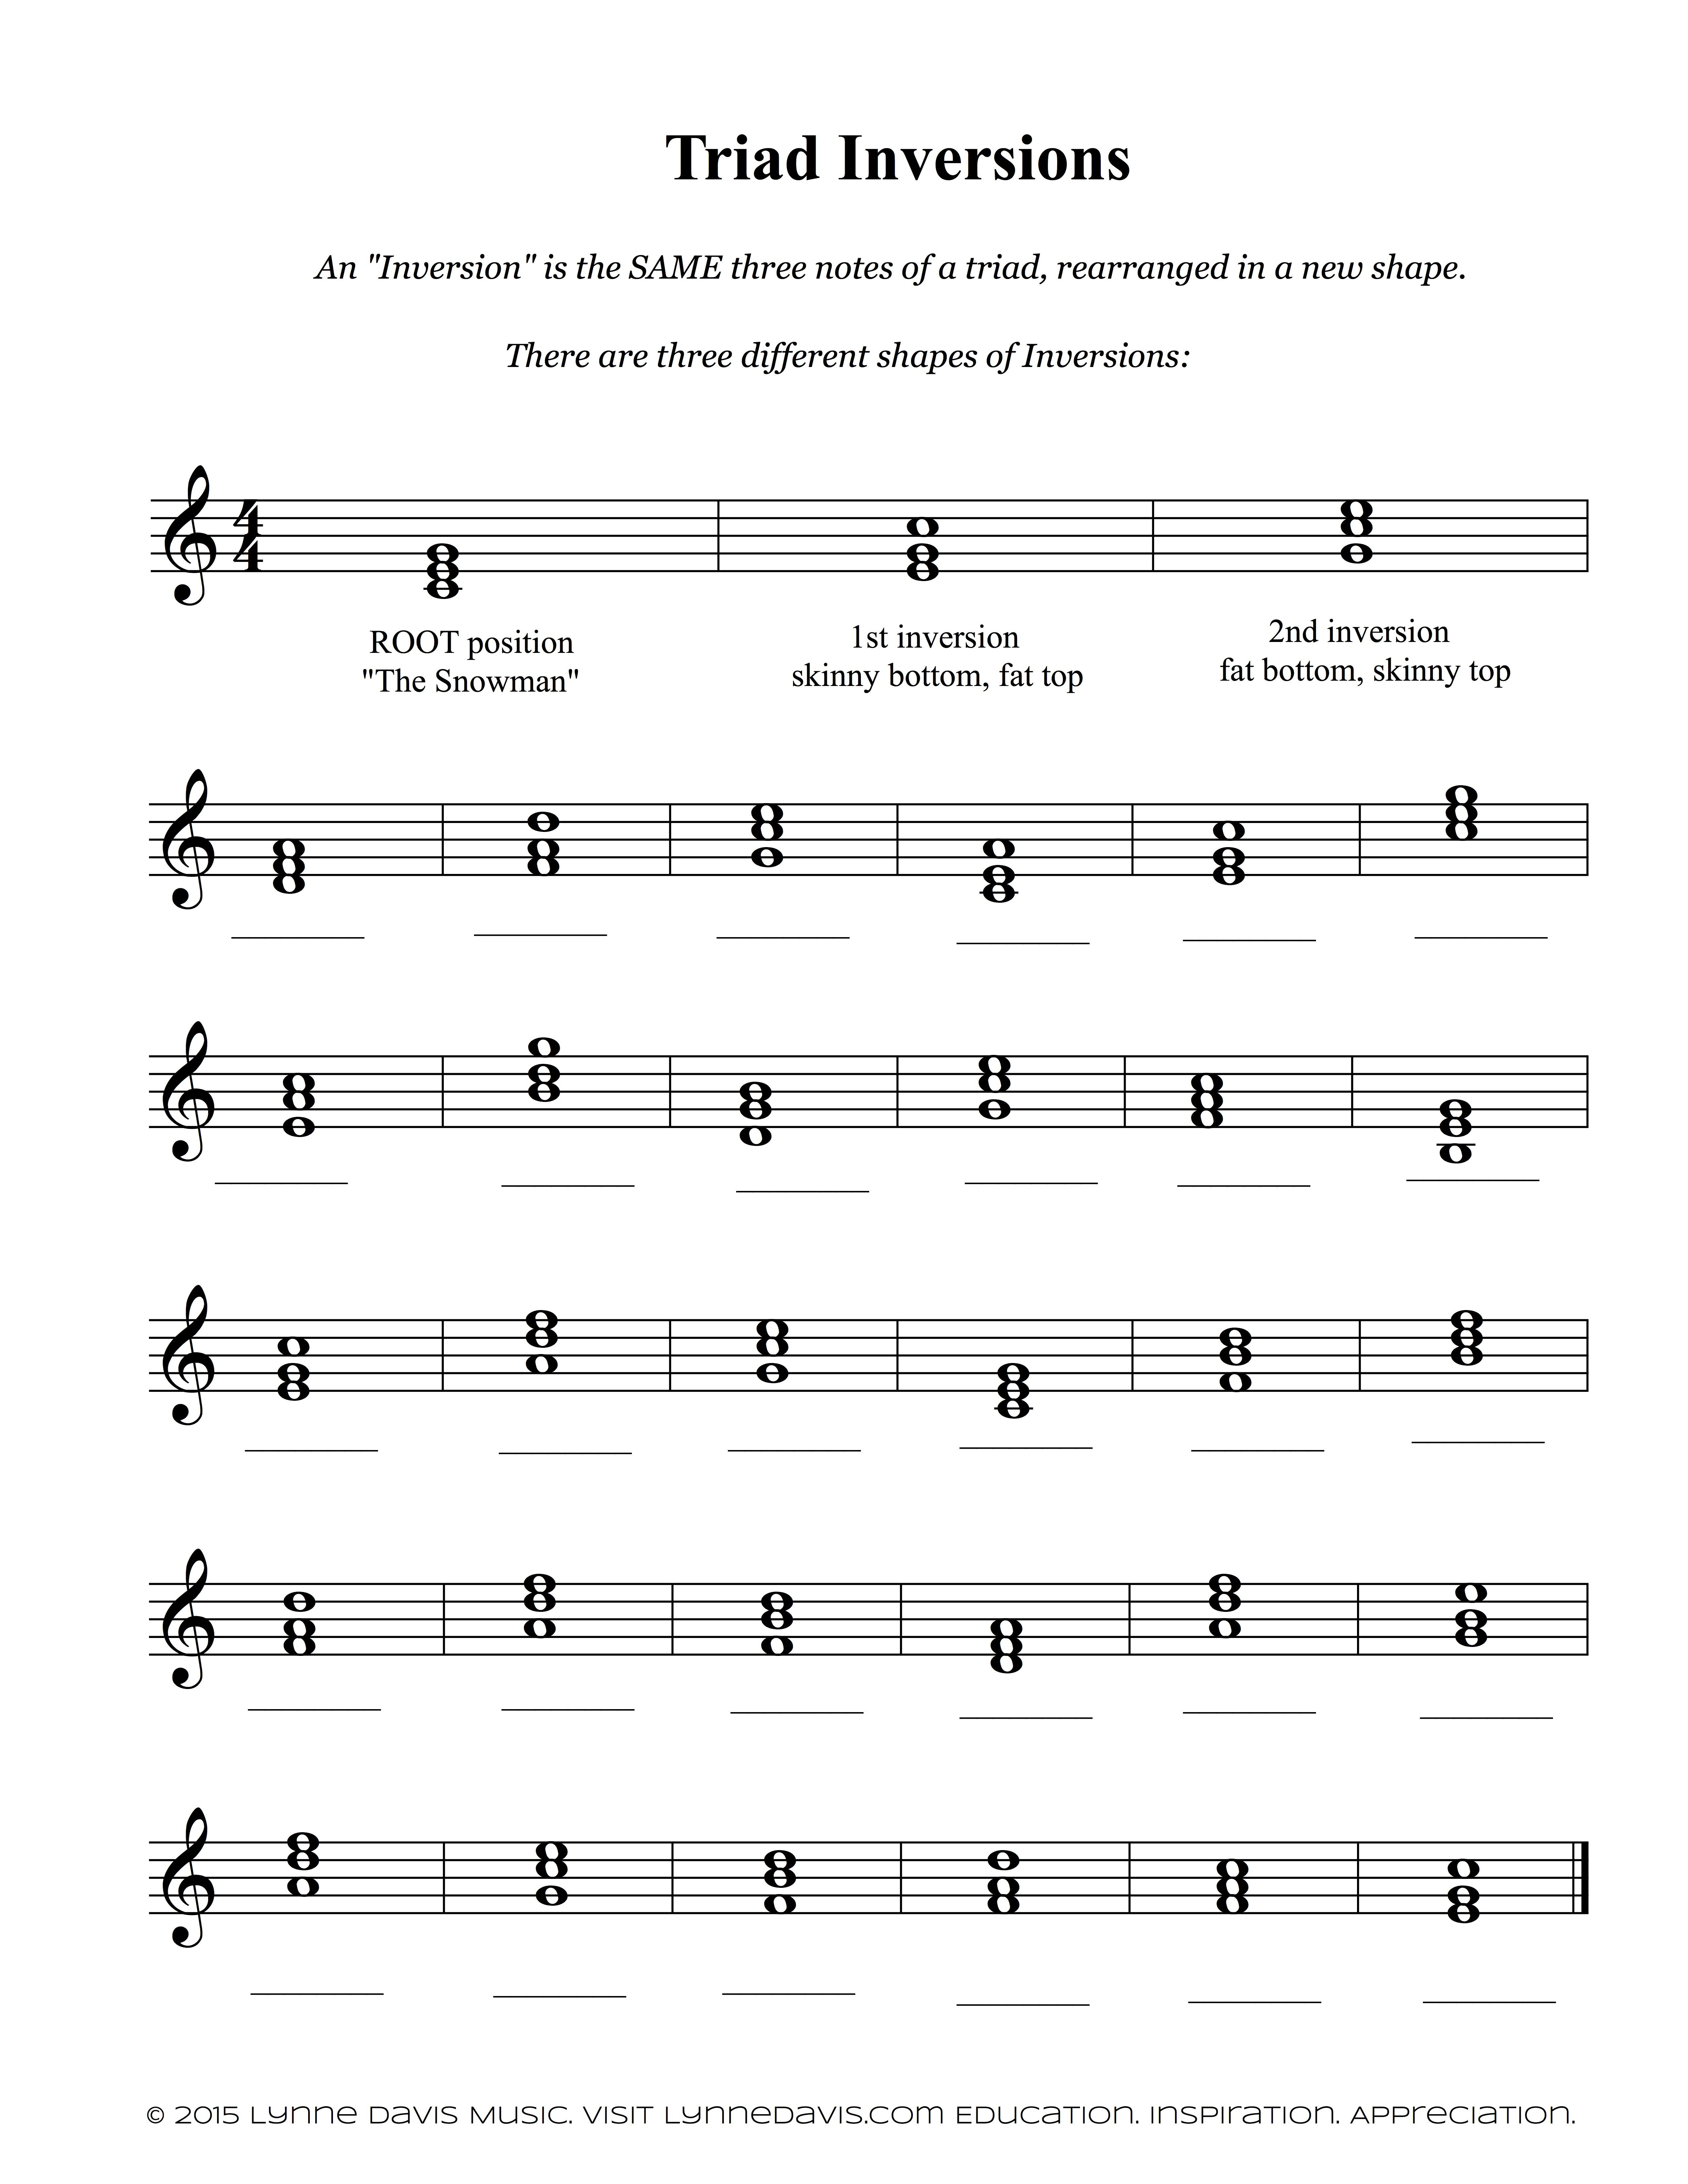 Inversions Worksheet | Music theory worksheets, Free music ...